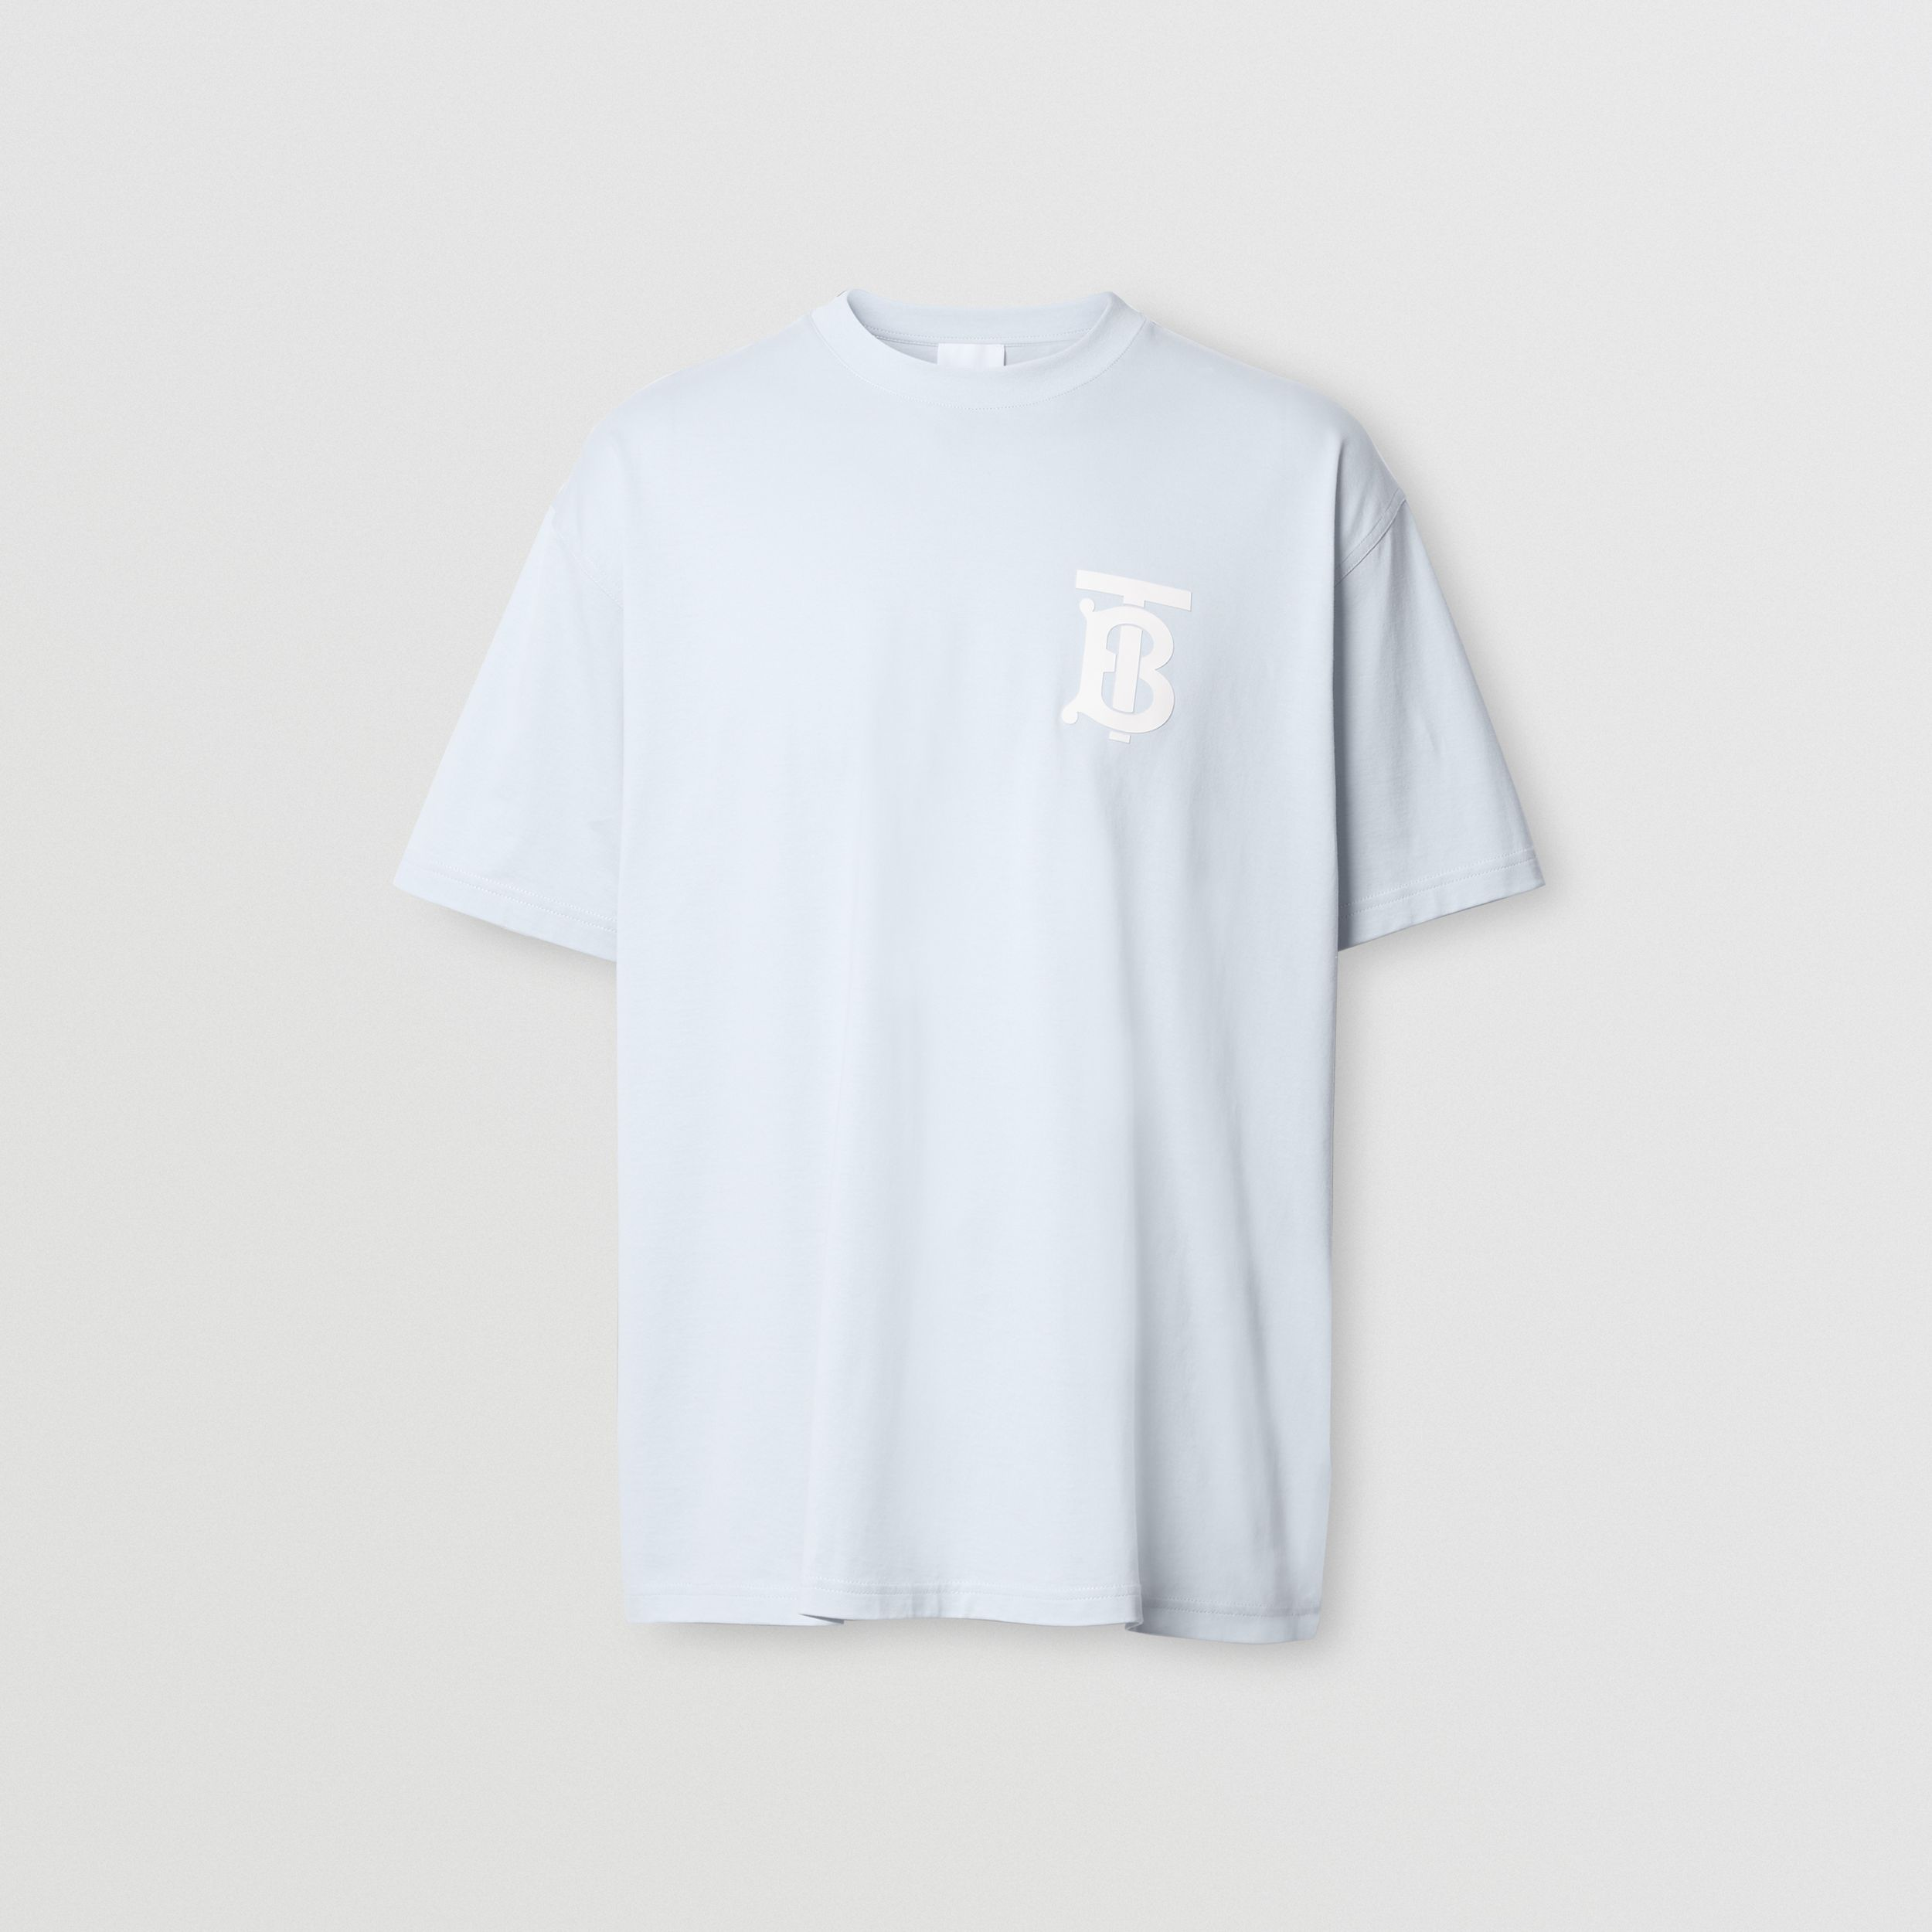 Monogram Motif Cotton Oversized T-shirt in Pale Blue - Men | Burberry - 4